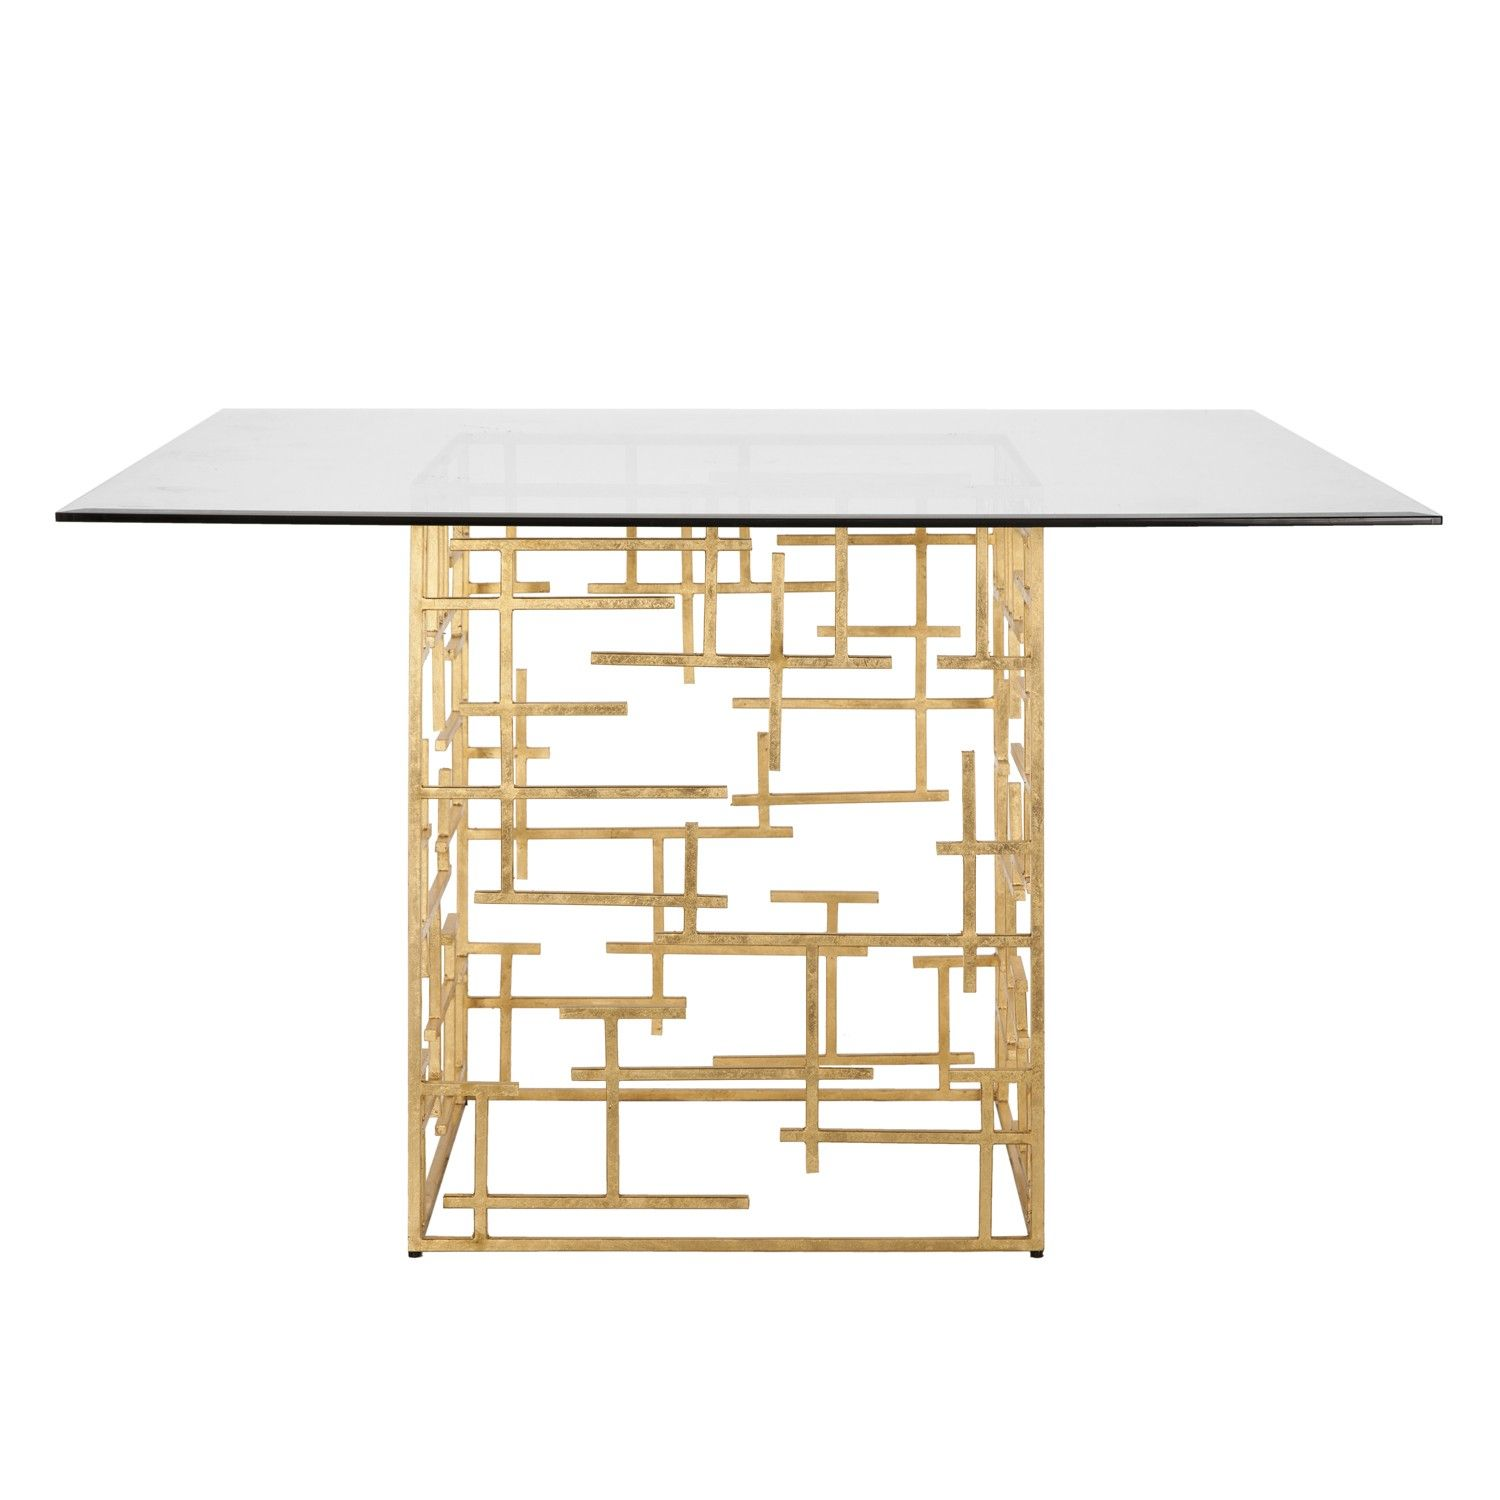 Daniel Gsq54 Dining Tables Tables Collection Dining Table